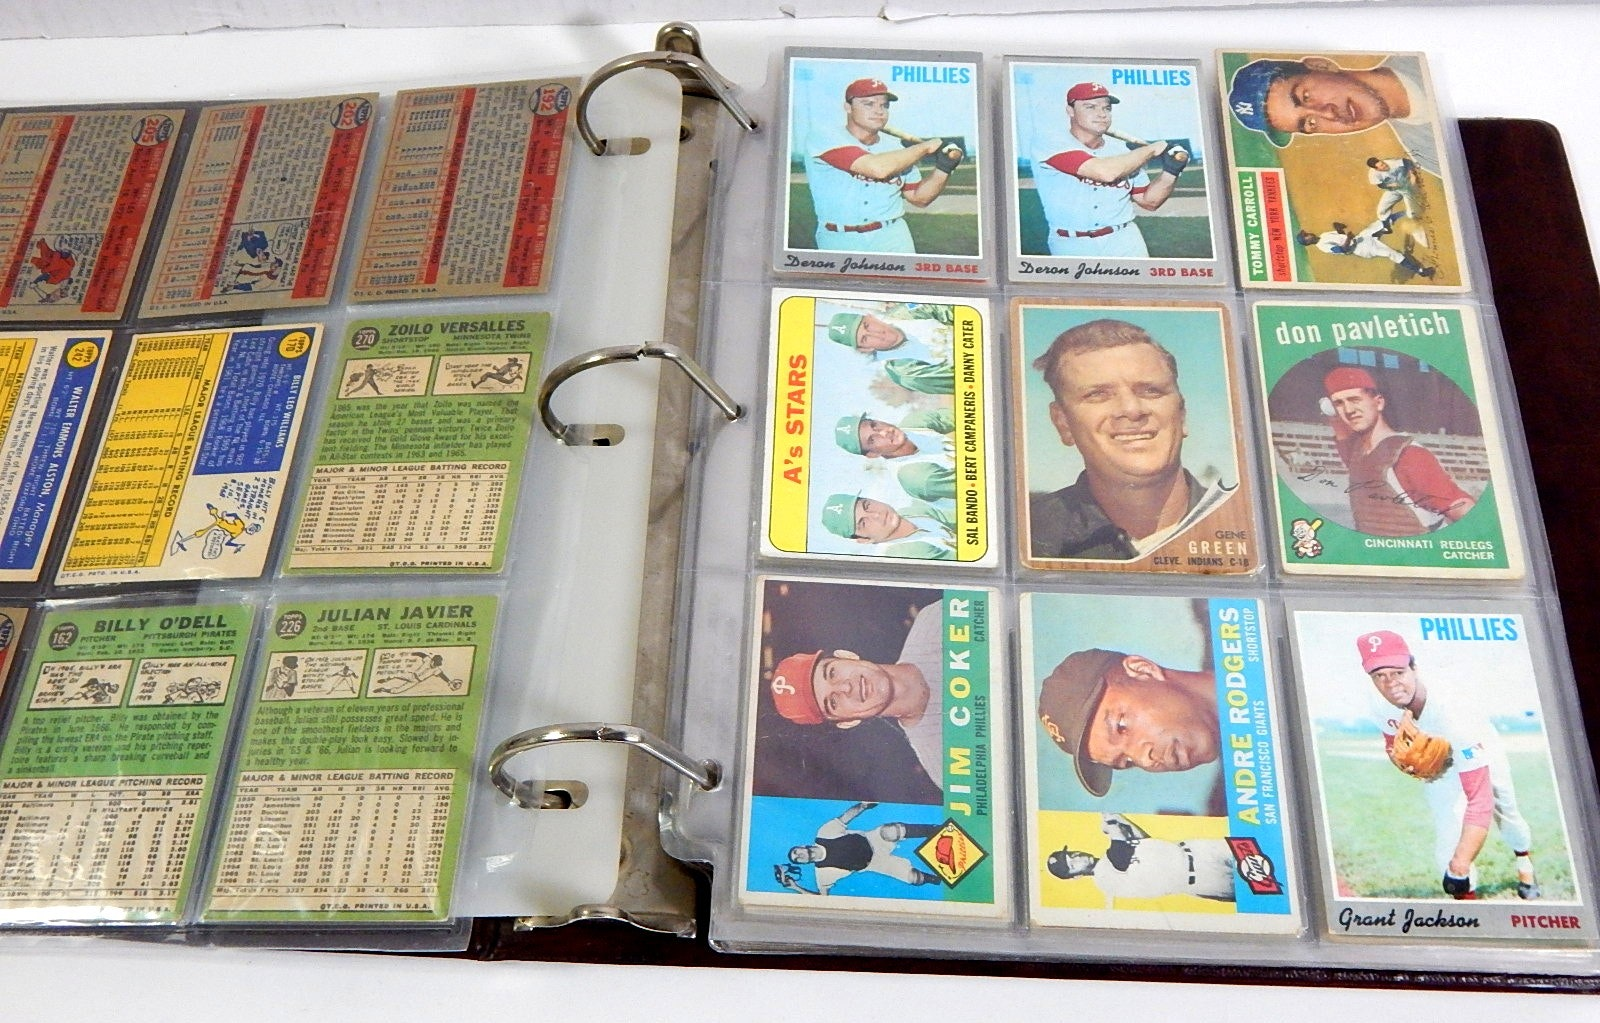 Vintage Topps Baseball Cards in Album from 1950s through 1974 with Mathews,Mays